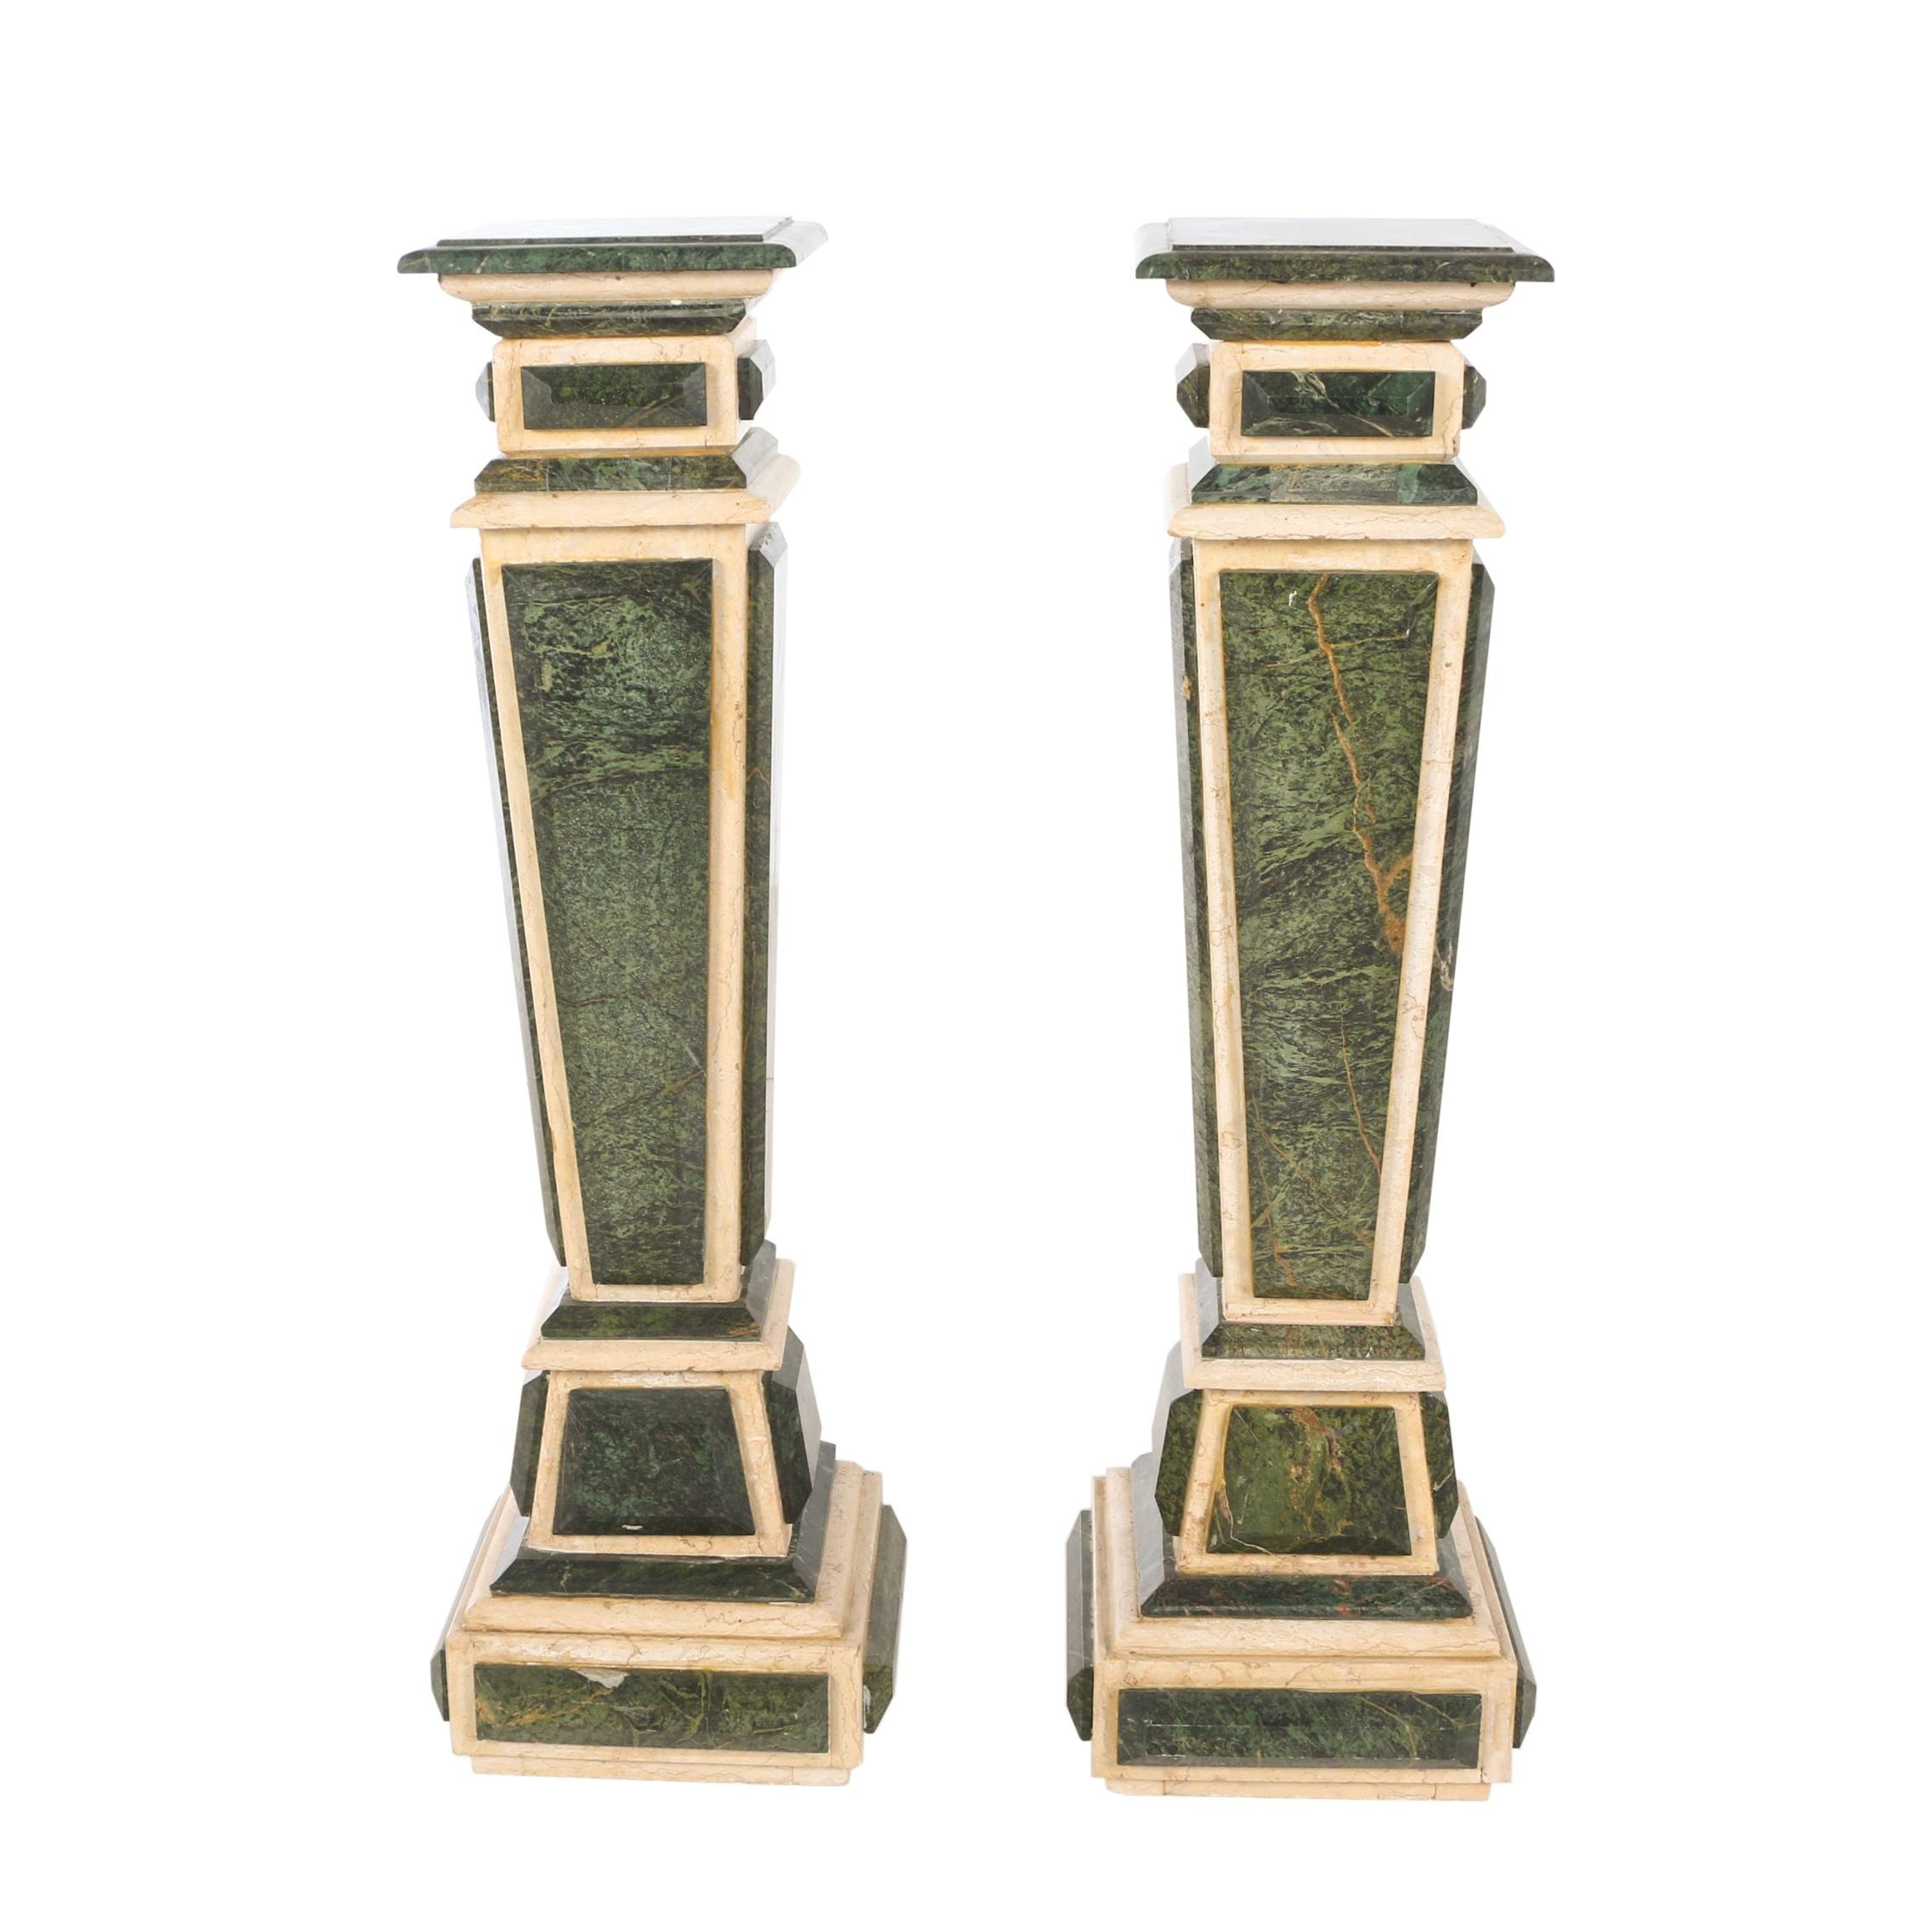 Pair of Green and White Marble Pedestals, Probably Italian, 20th Century